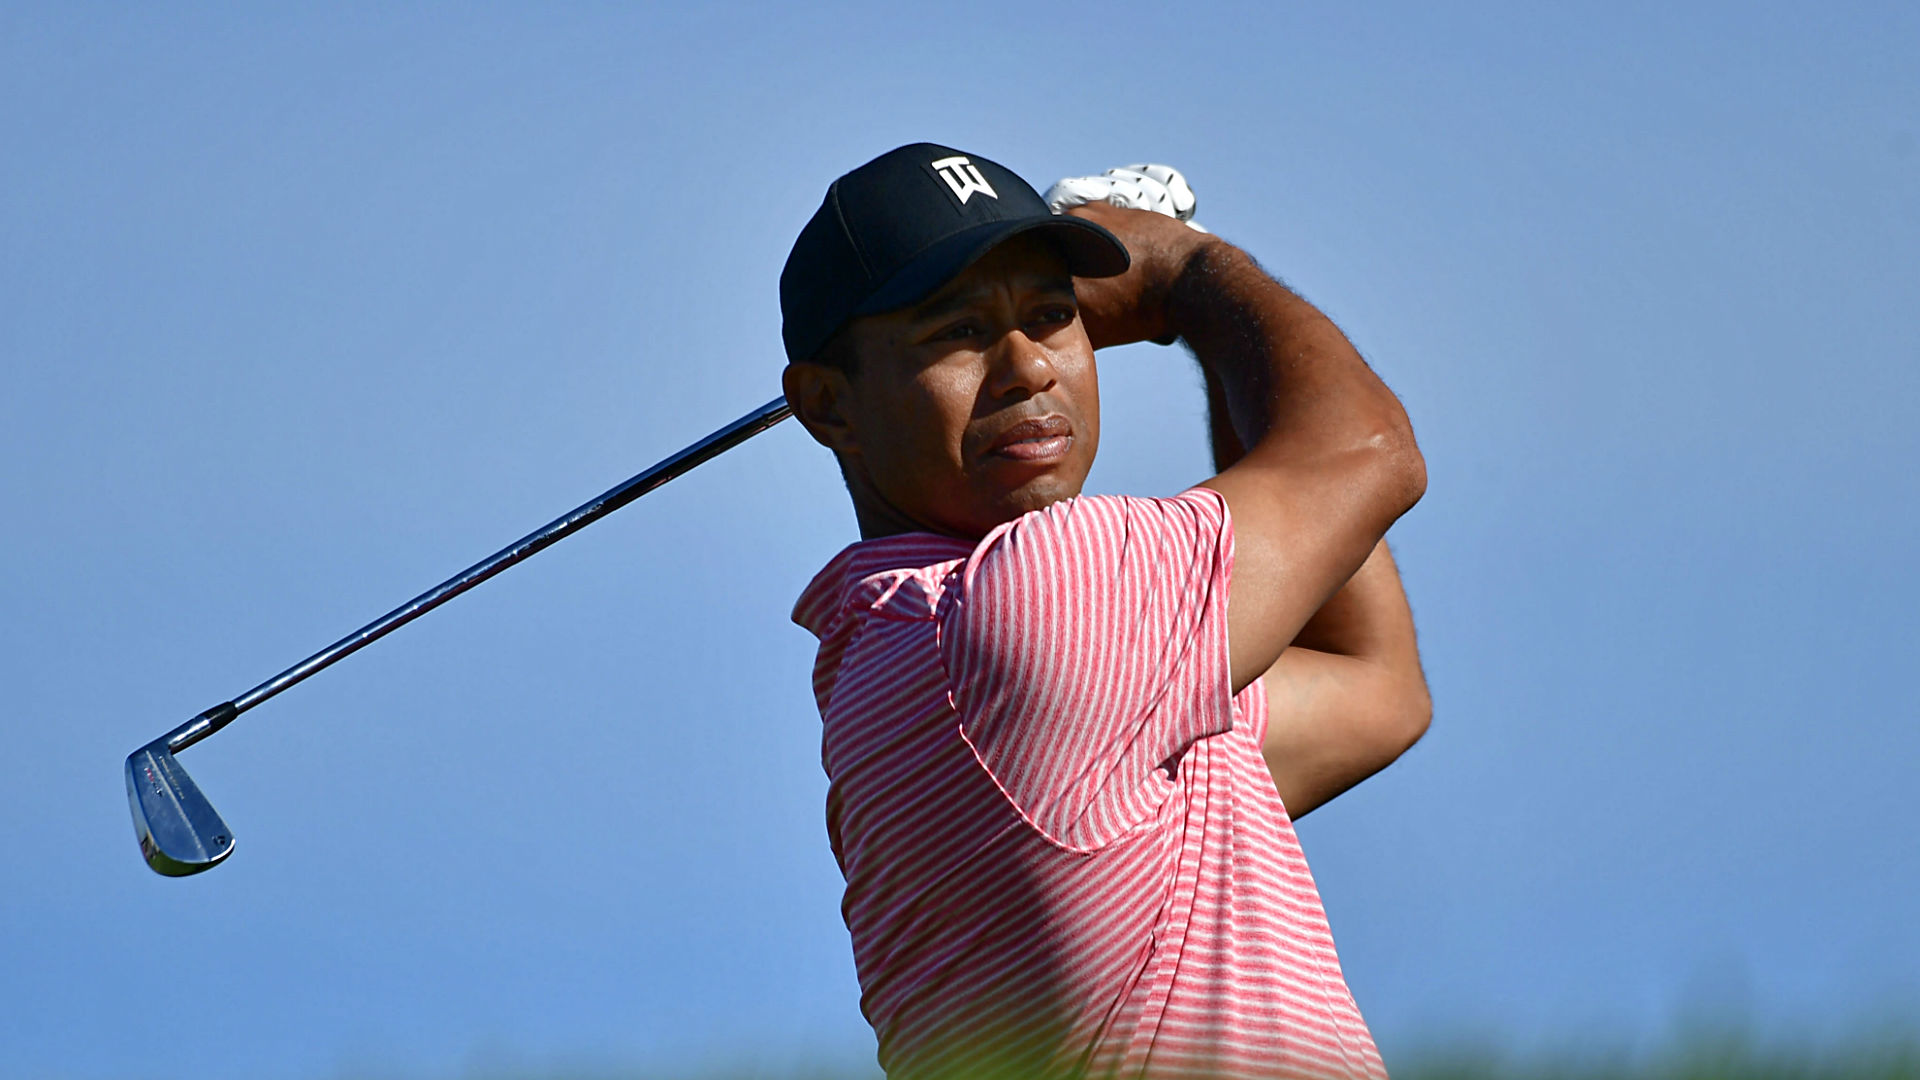 tiger woods u0026 39  score  results  round 4 highlights from